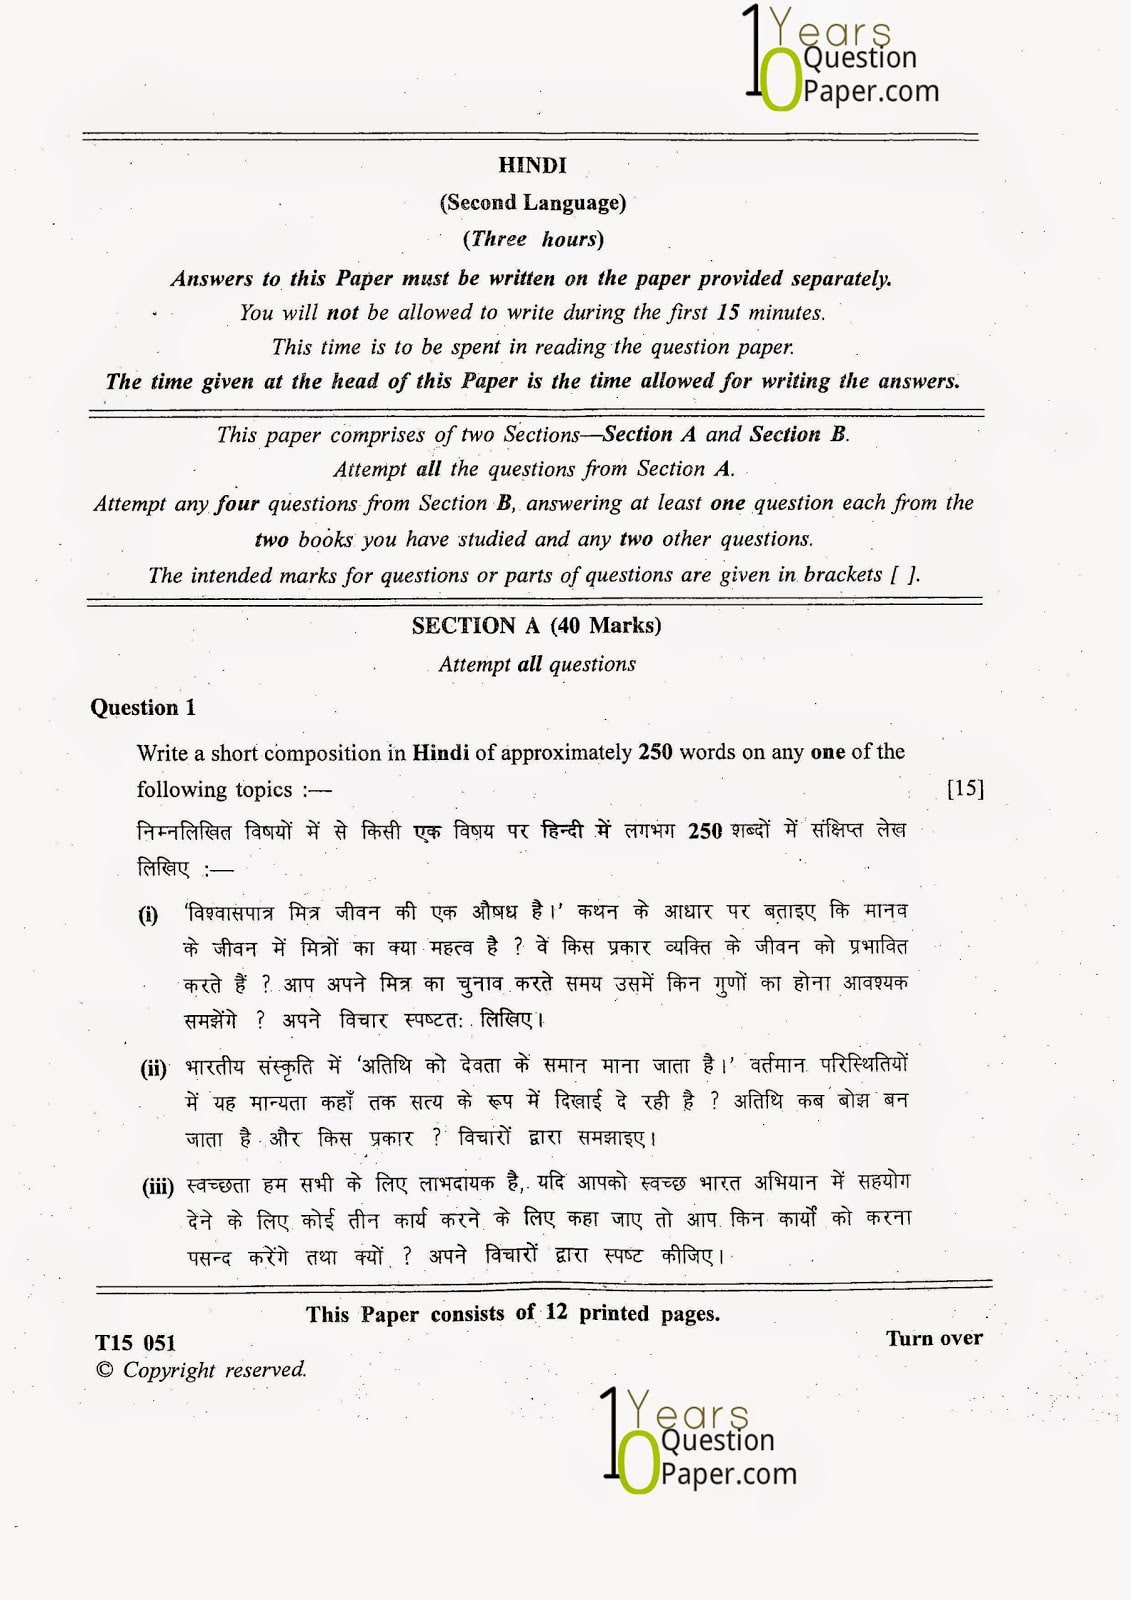 ICSE 2015 Hindi Question Paper for Class 10